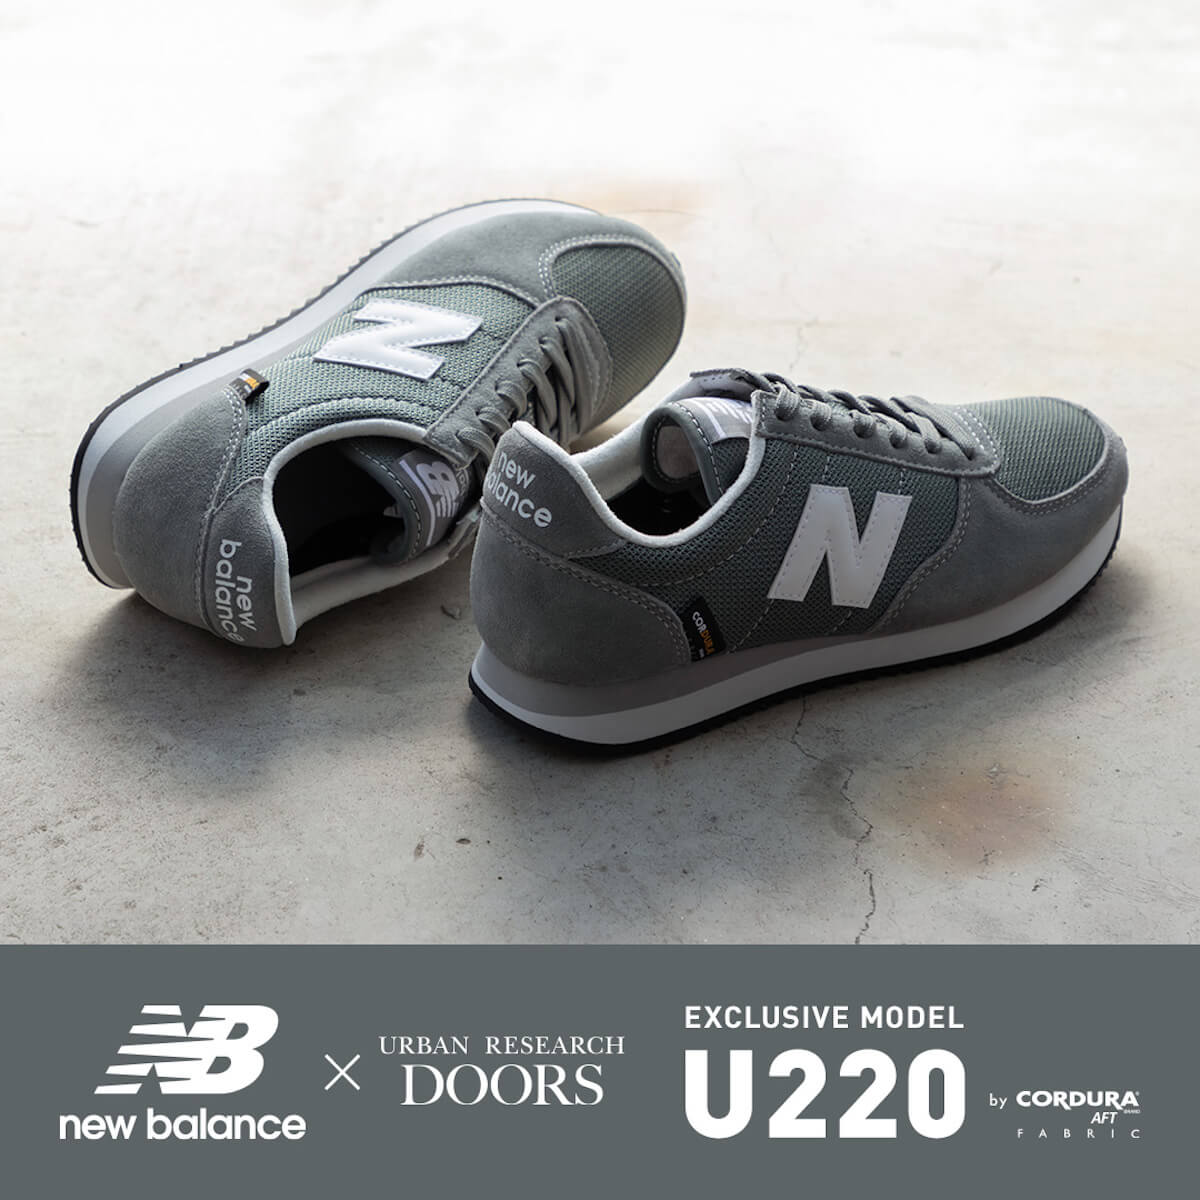 New Balance × URBAN RESEARCH DOORS「別注U220 SEDONASAGE」エクスクルーシブモデルが登場! life181210_newbalance-urdoors_01